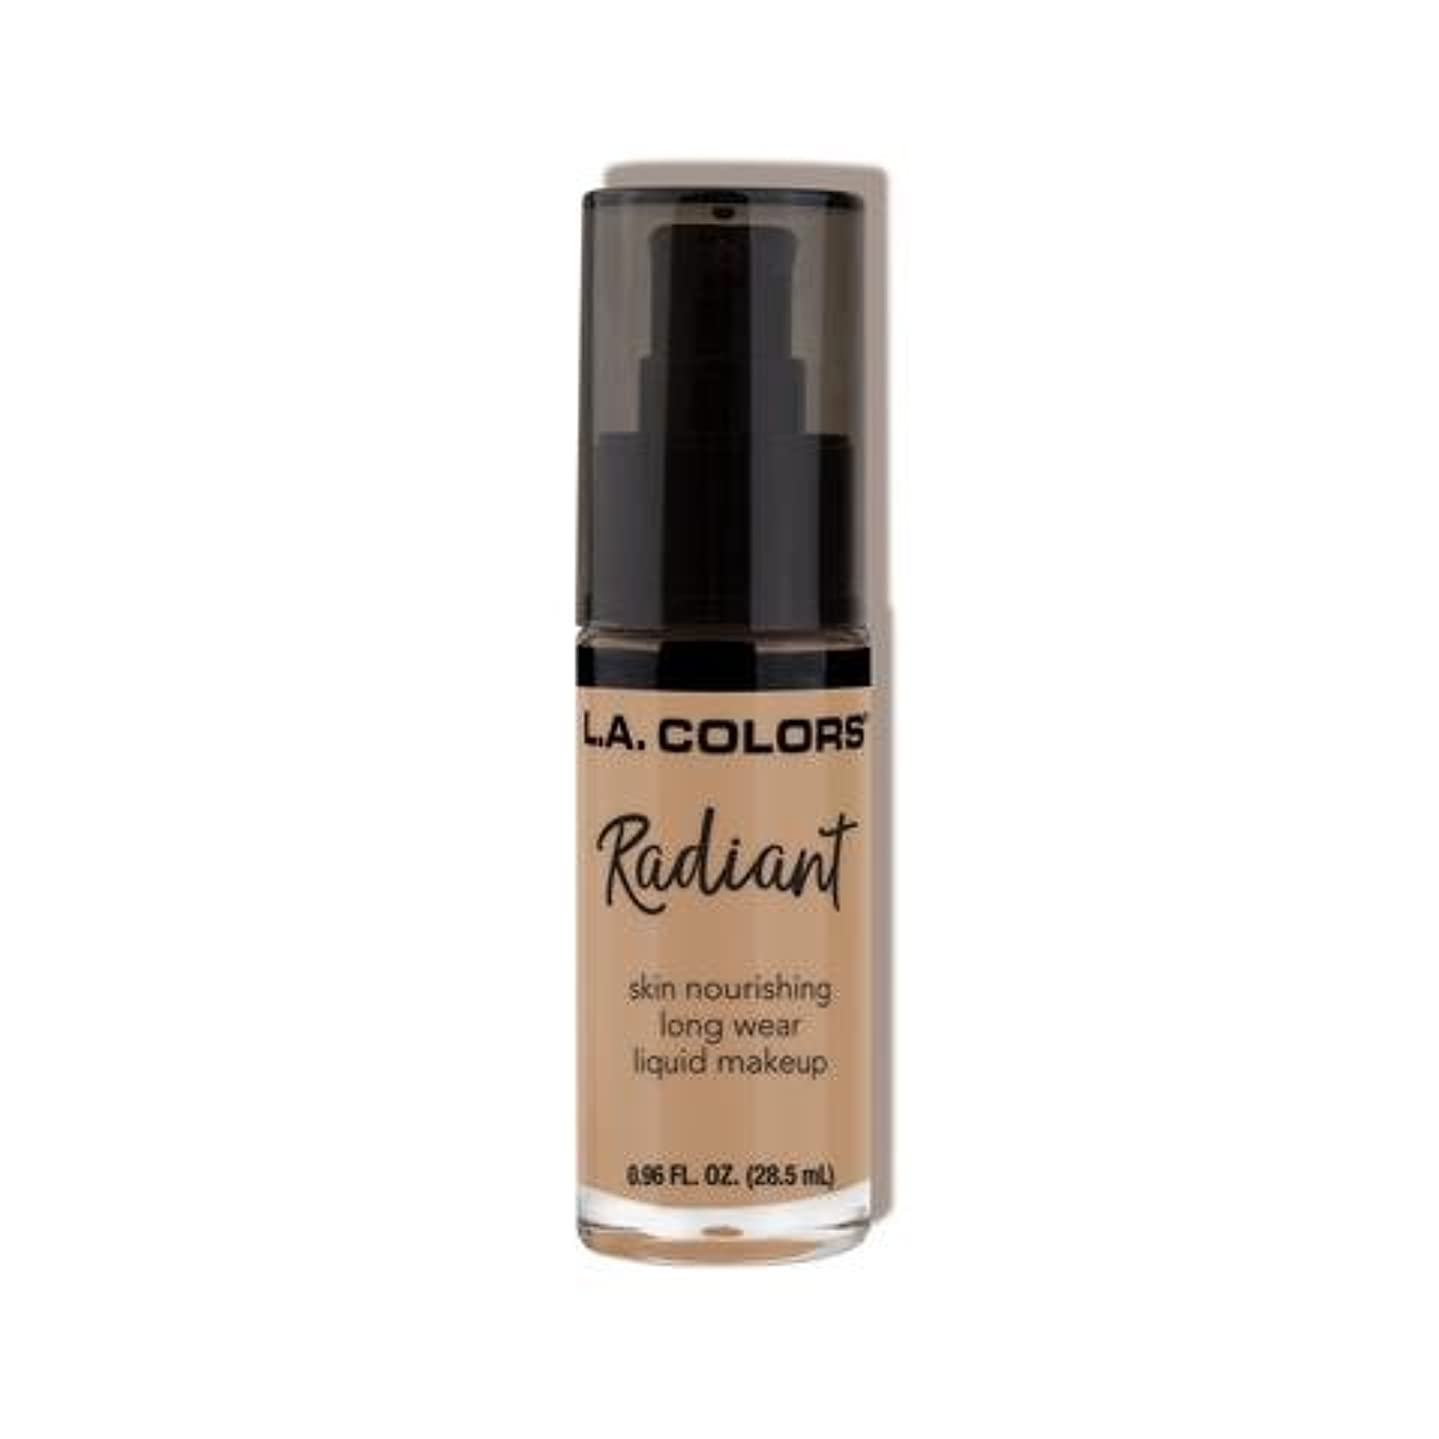 エクスタシー歌うすき(3 Pack) L.A. COLORS Radiant Liquid Makeup - Medium Beige (並行輸入品)